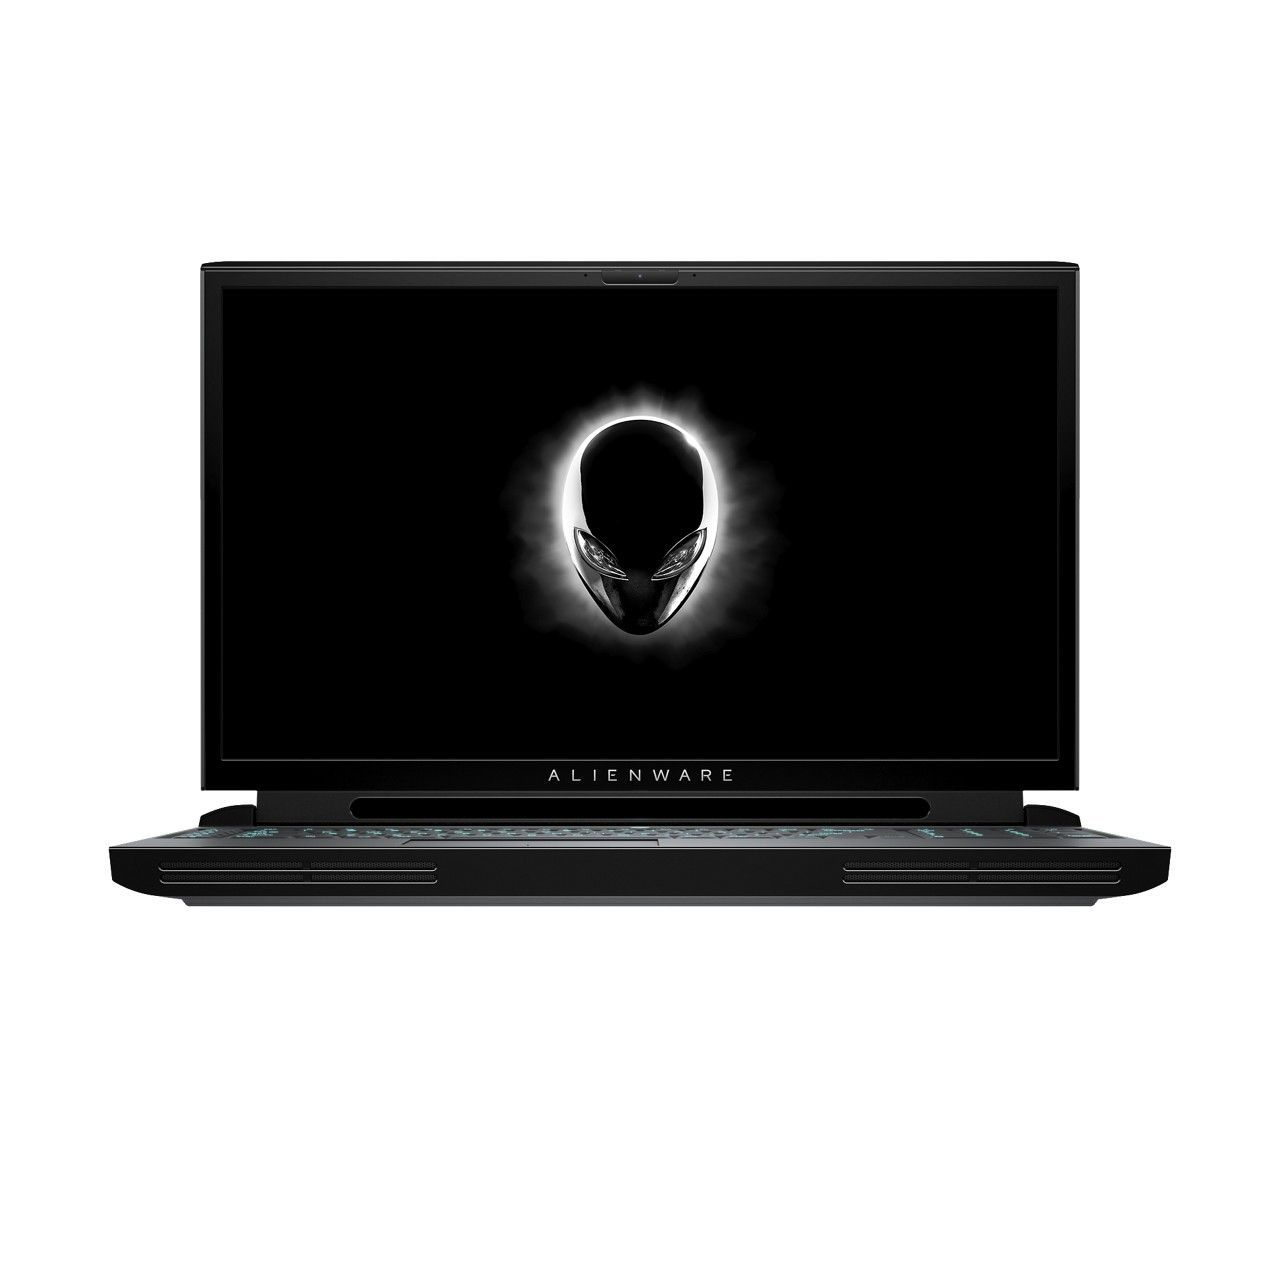 Alienware Area-51M Gaming Laptop i9-9900K 3.60Ghz/64GB RAM/1TB+1TB/Geforce RTX 2080 8GB/17.3 Inch FHD/Windows 10